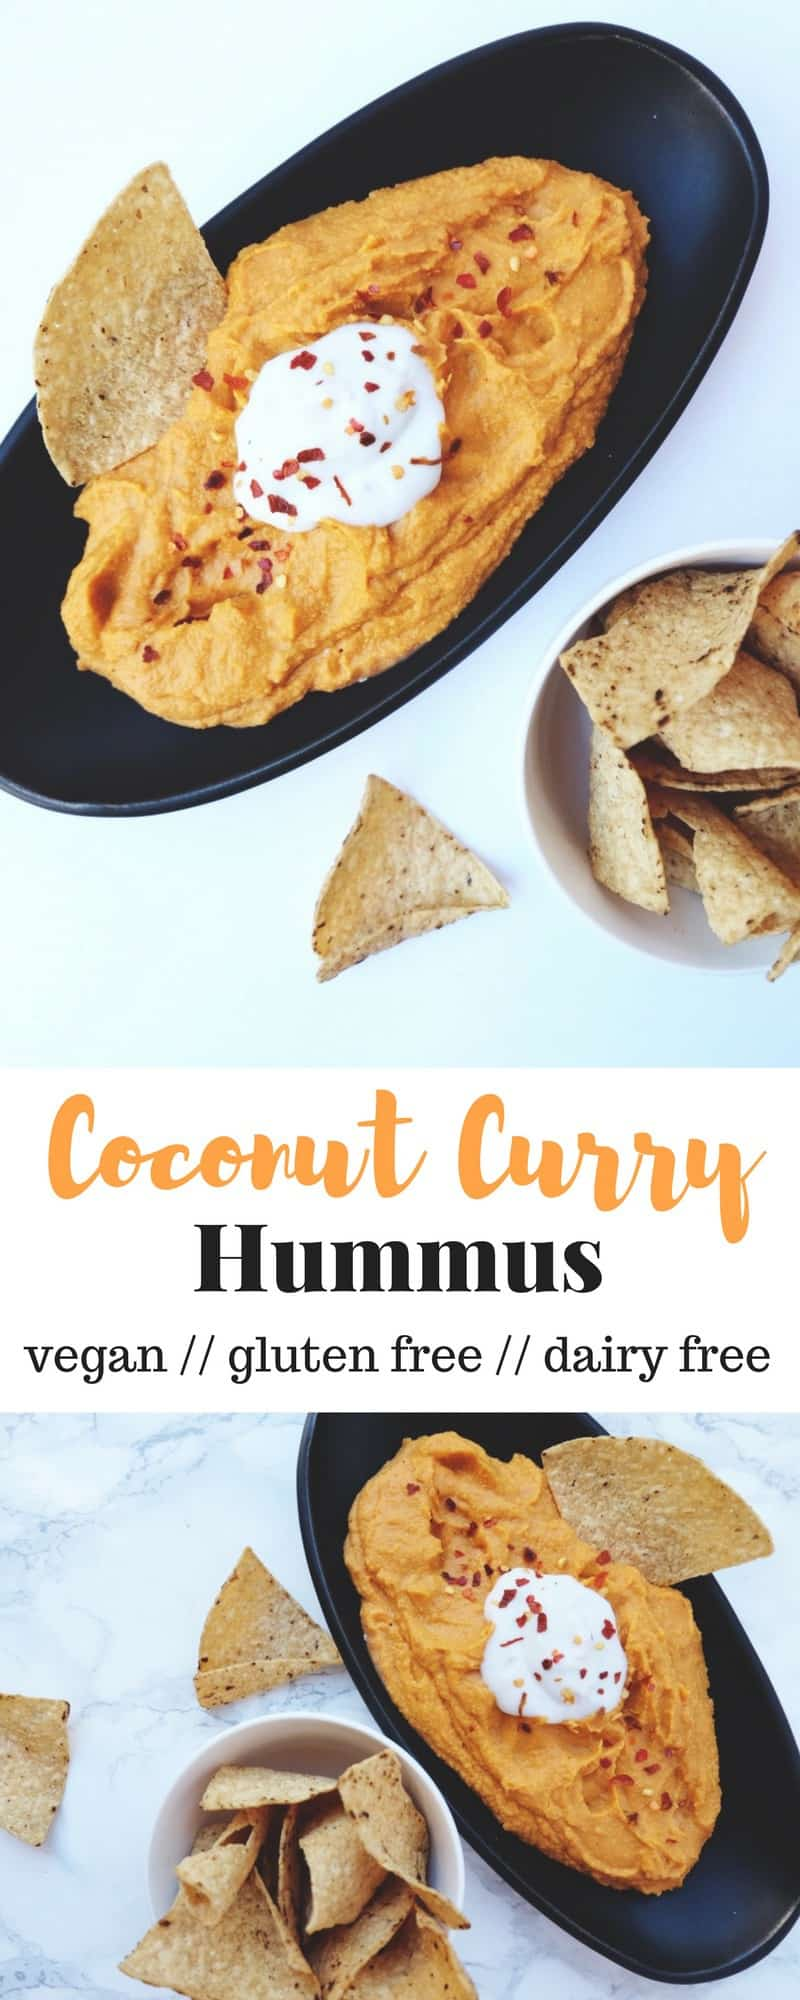 An upgradedversion of you favorite dip, this Coconut Curry Hummus is a little spicy and sweet and makes for a delicious creamy, dairy free, and vegan hummus - Eat the Gains